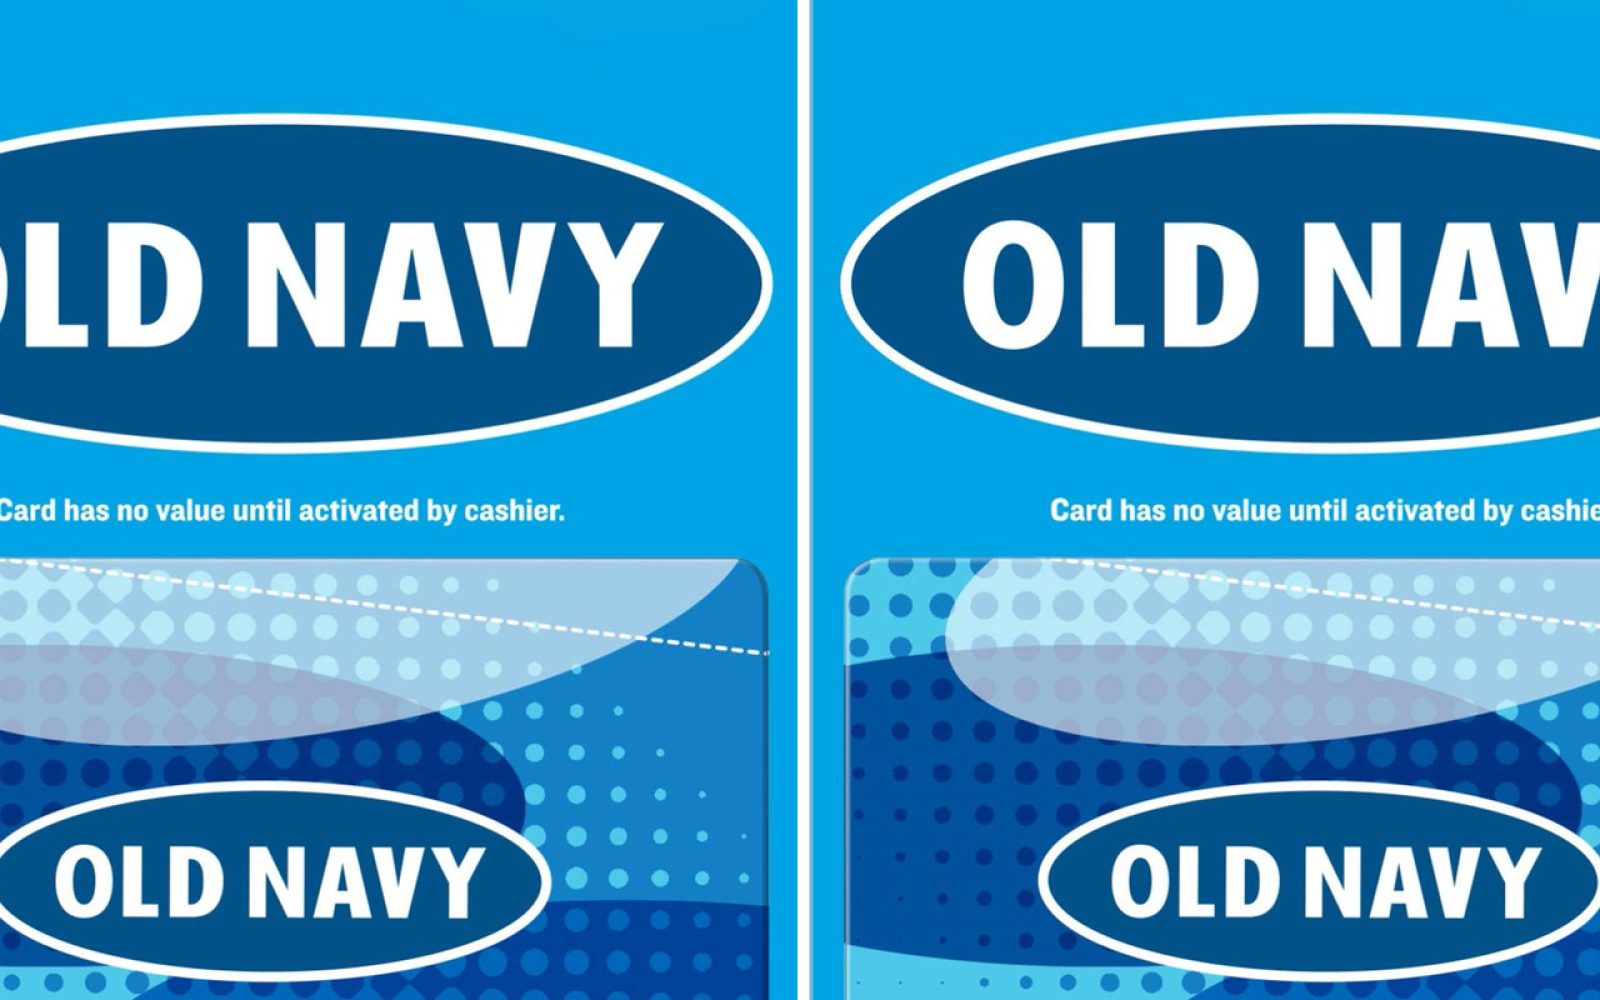 Gift Cards up to 20% off: Old Navy, Gap, Banana Republic